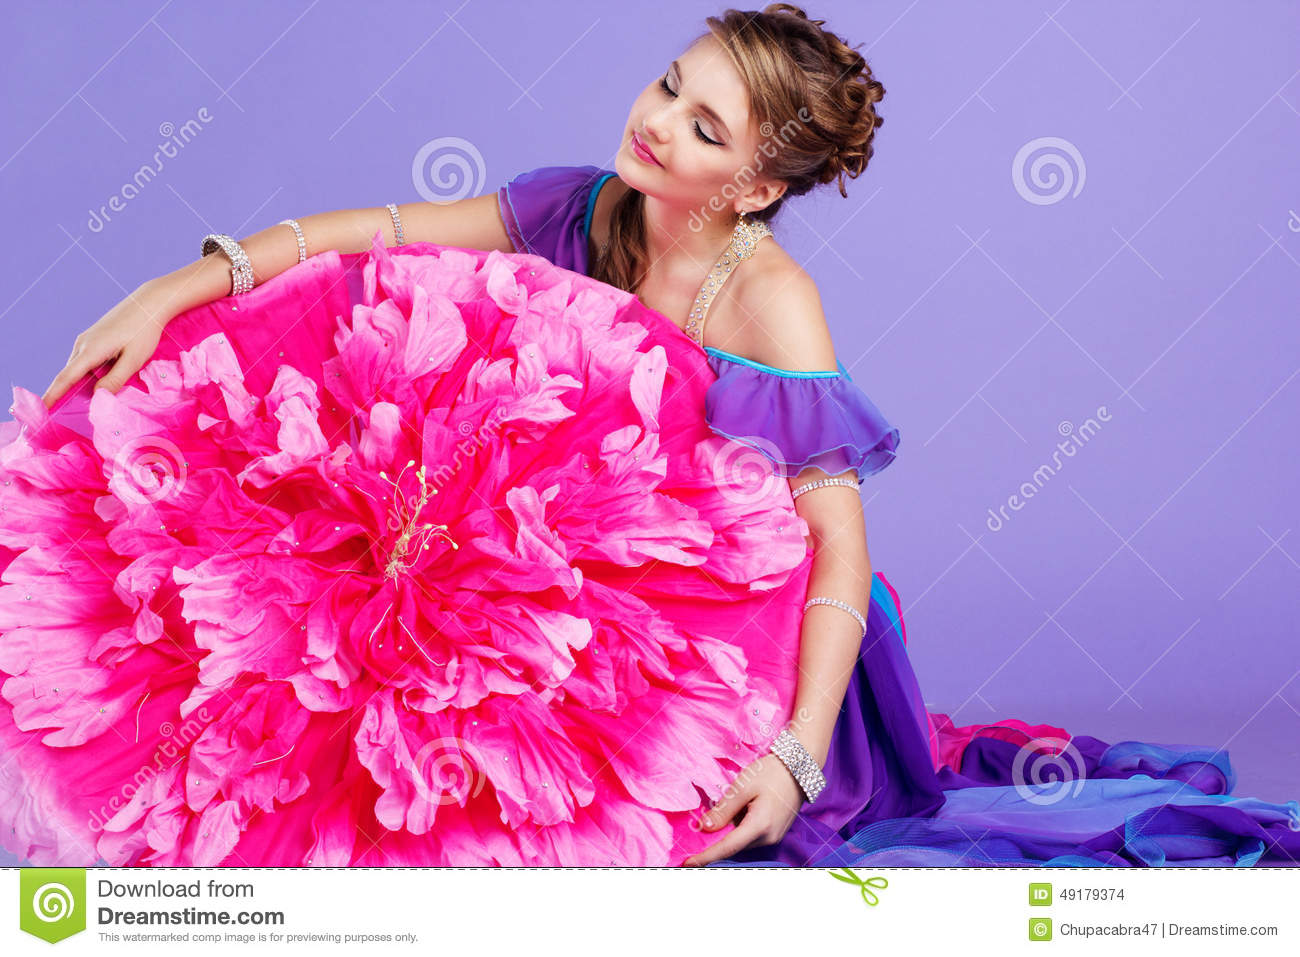 faa855deda493 Beautiful belly dancer girl with nice makeup and heardress with pink flower  umbrella. Isolated on purple